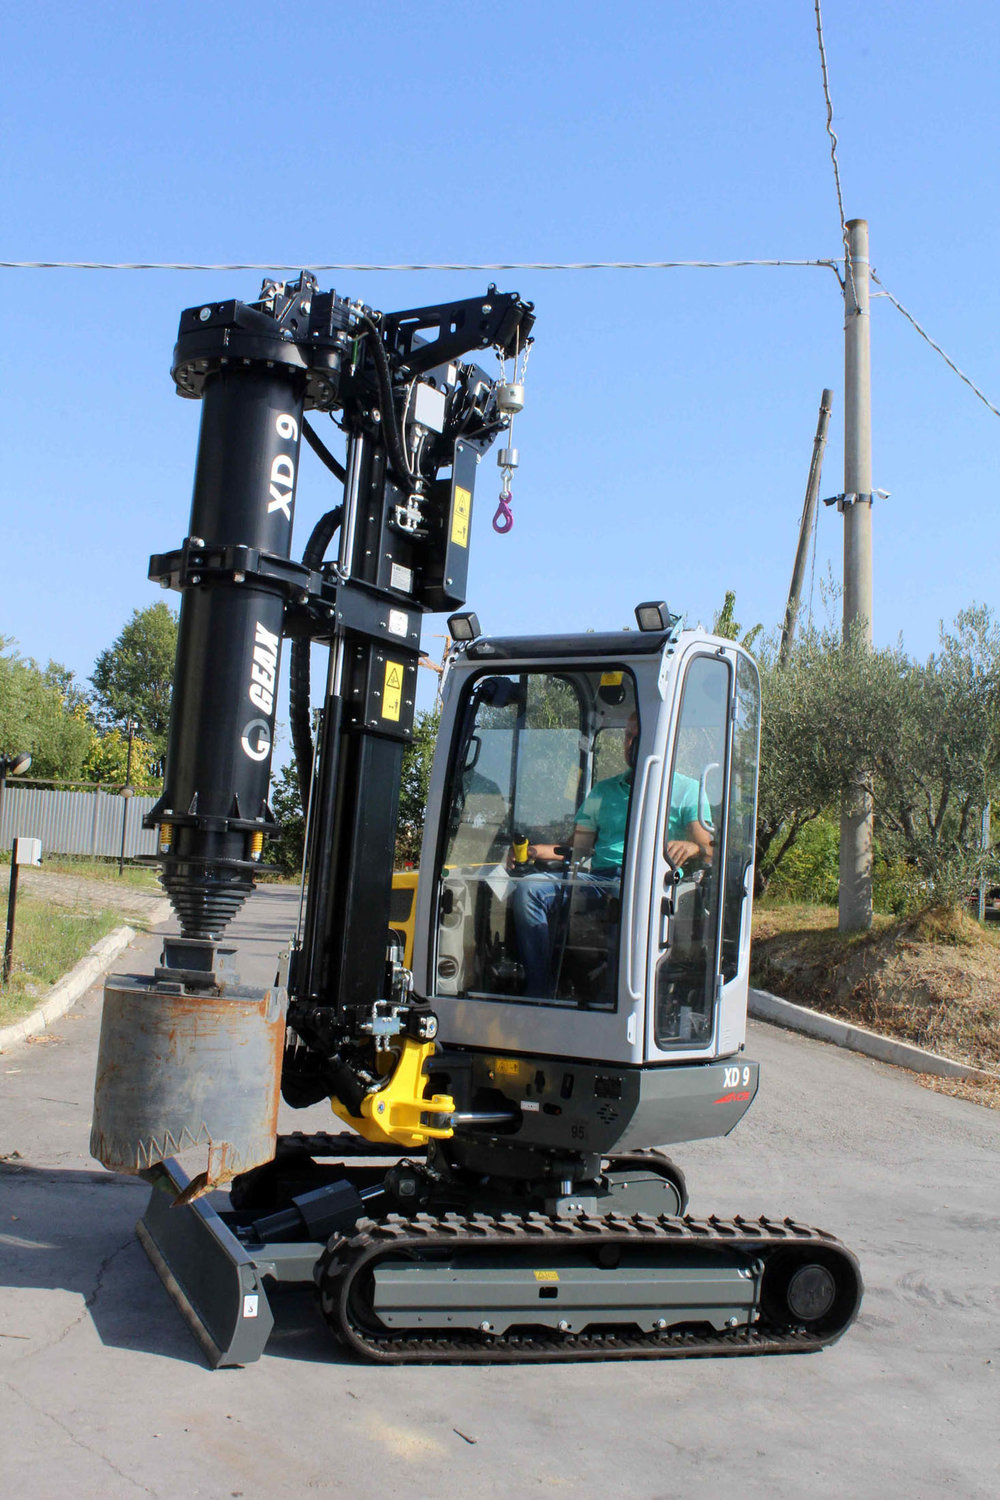 GEAX XD9  Limited Access Piling Rig   Limited Access Piling Rig Mounted on Wacker Neuson 3503  GEAX ~ 2016 Hours: 70